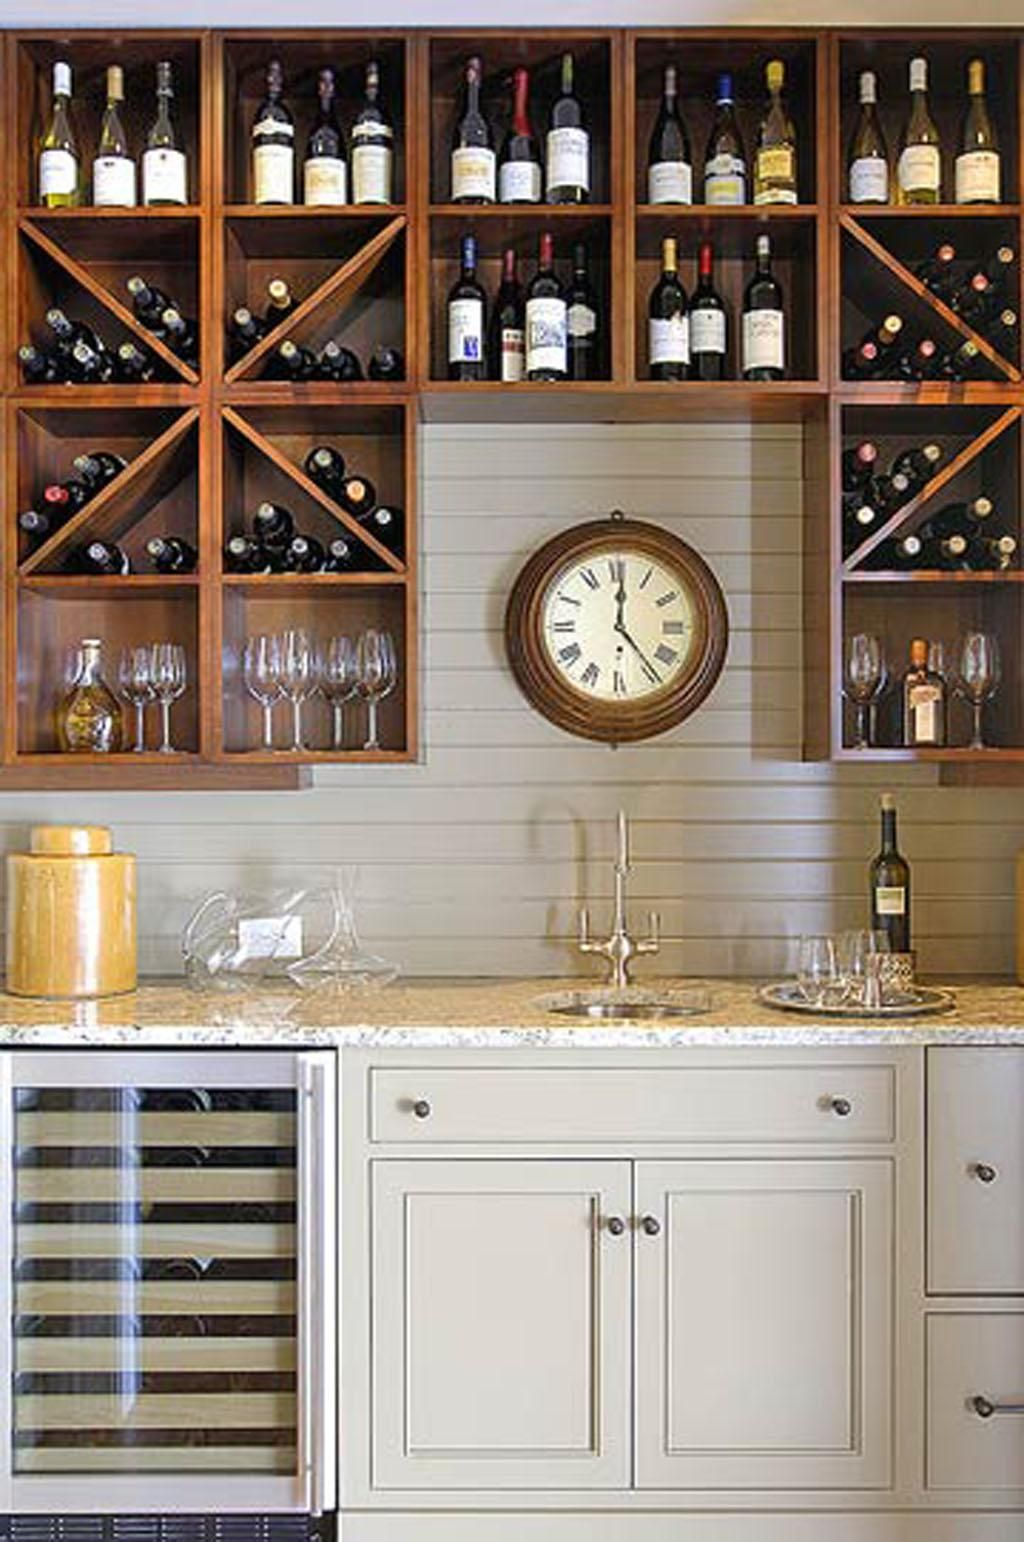 Wine bar decorating ideas home wet bar wine storage wine for Home bar decor